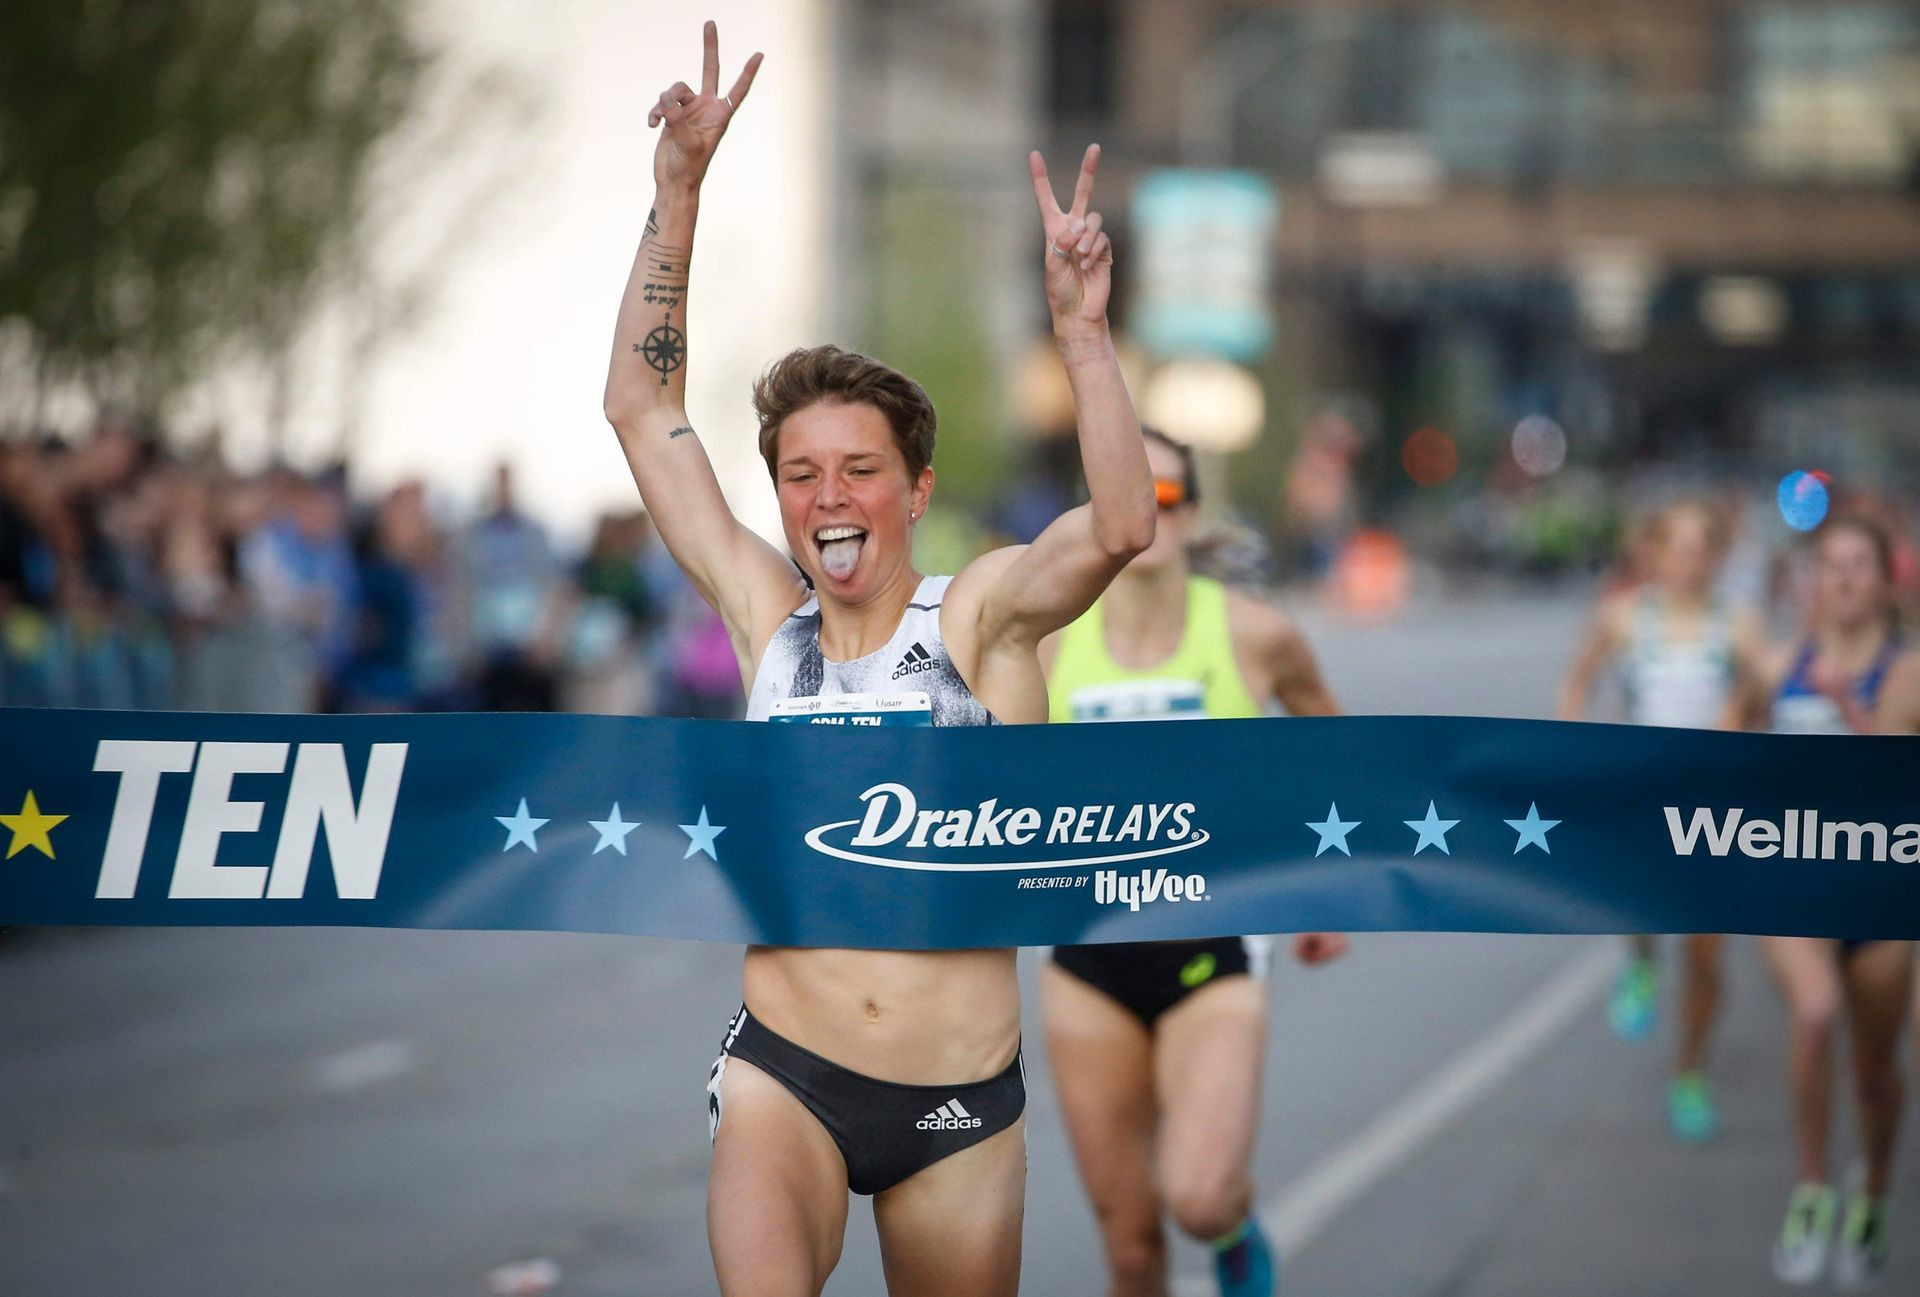 San Diego runner Nikki Hiltz, set a new Blue Mile record in the Women's Mile